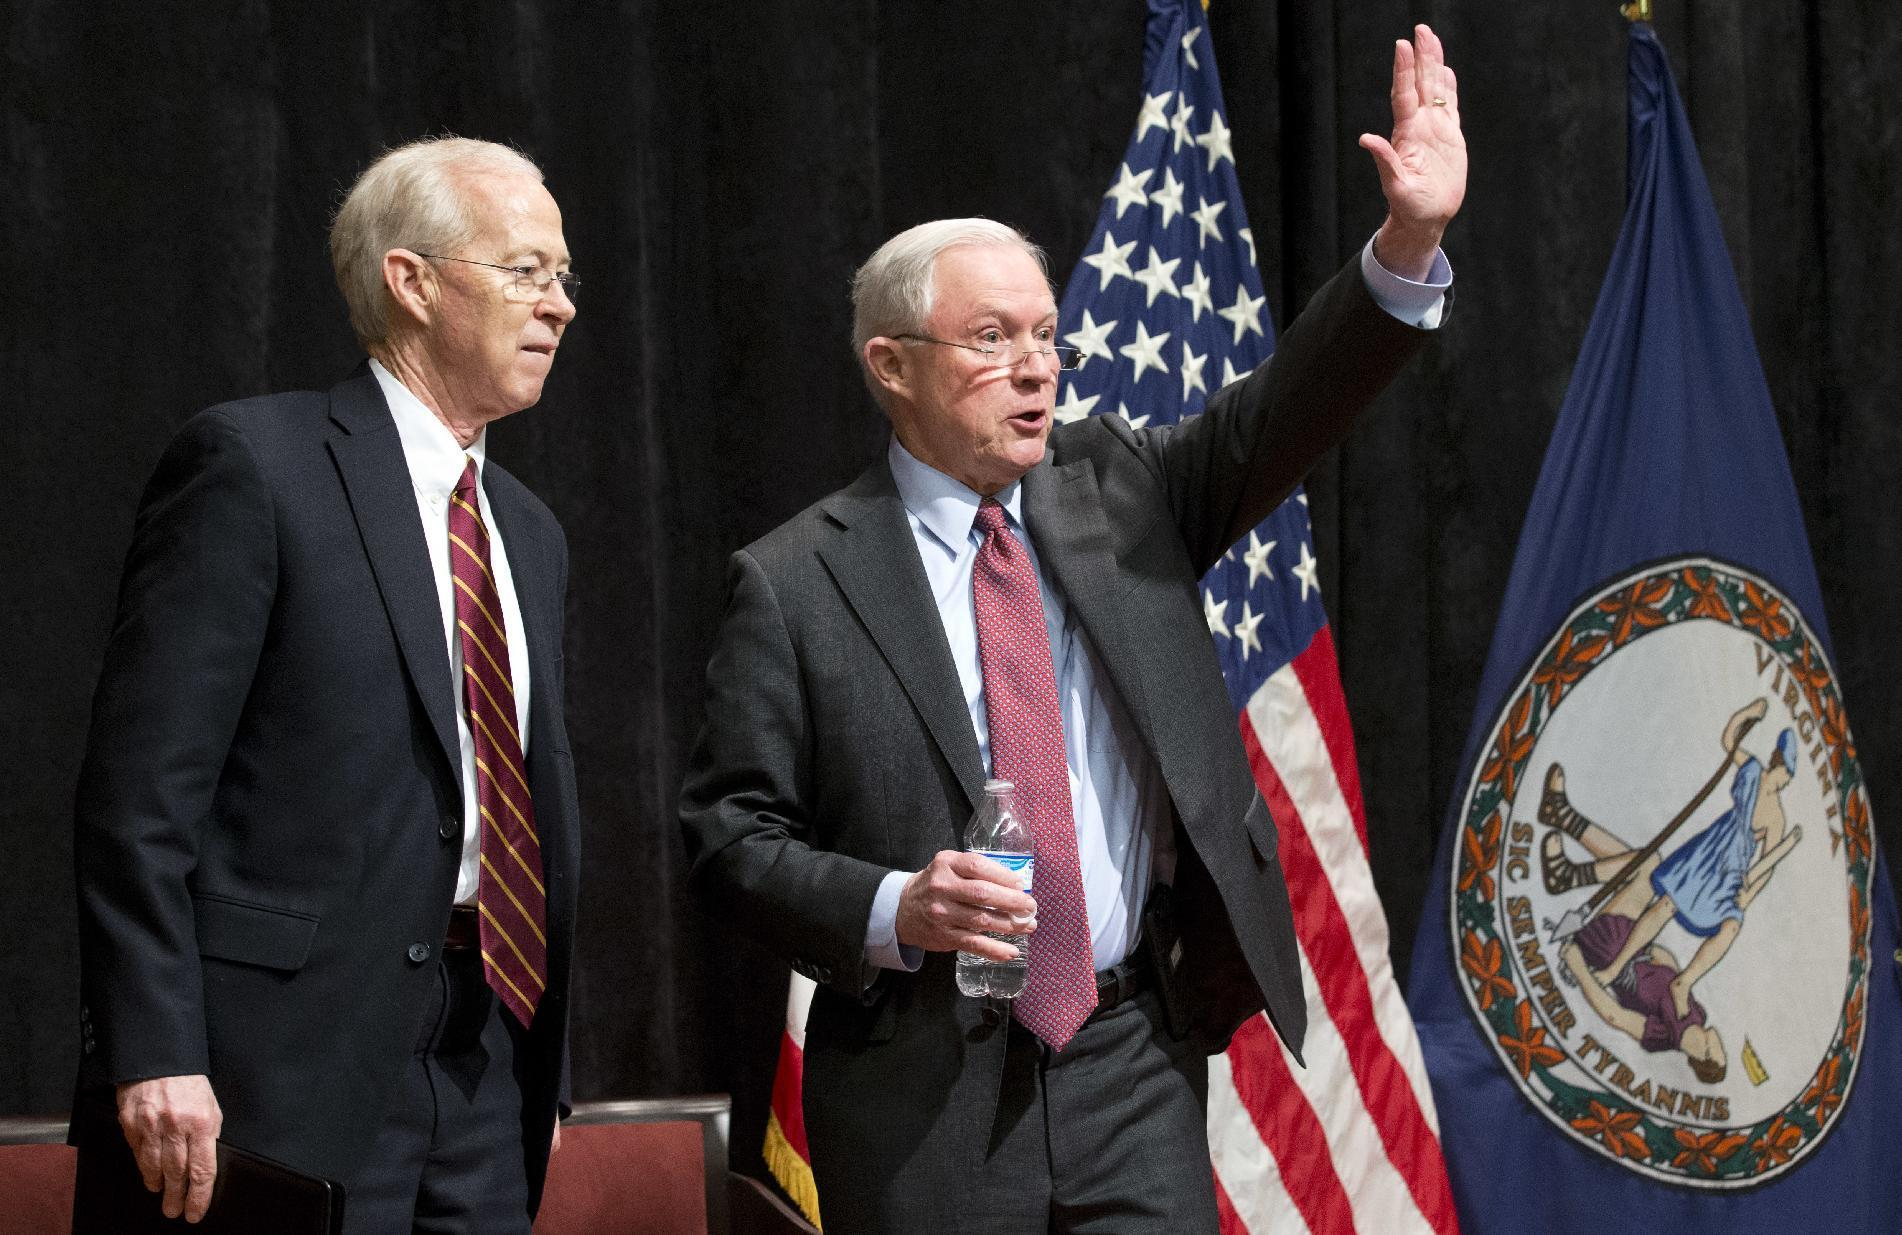 Attorney General Jeff Sessions, right, accompanied by Deputy Attorney General Dana Bonte, waves after speaking to law enforcement officers in Richmond, Va., Wednesday, March 15, 2017. (AP Photo/Steve Helber)